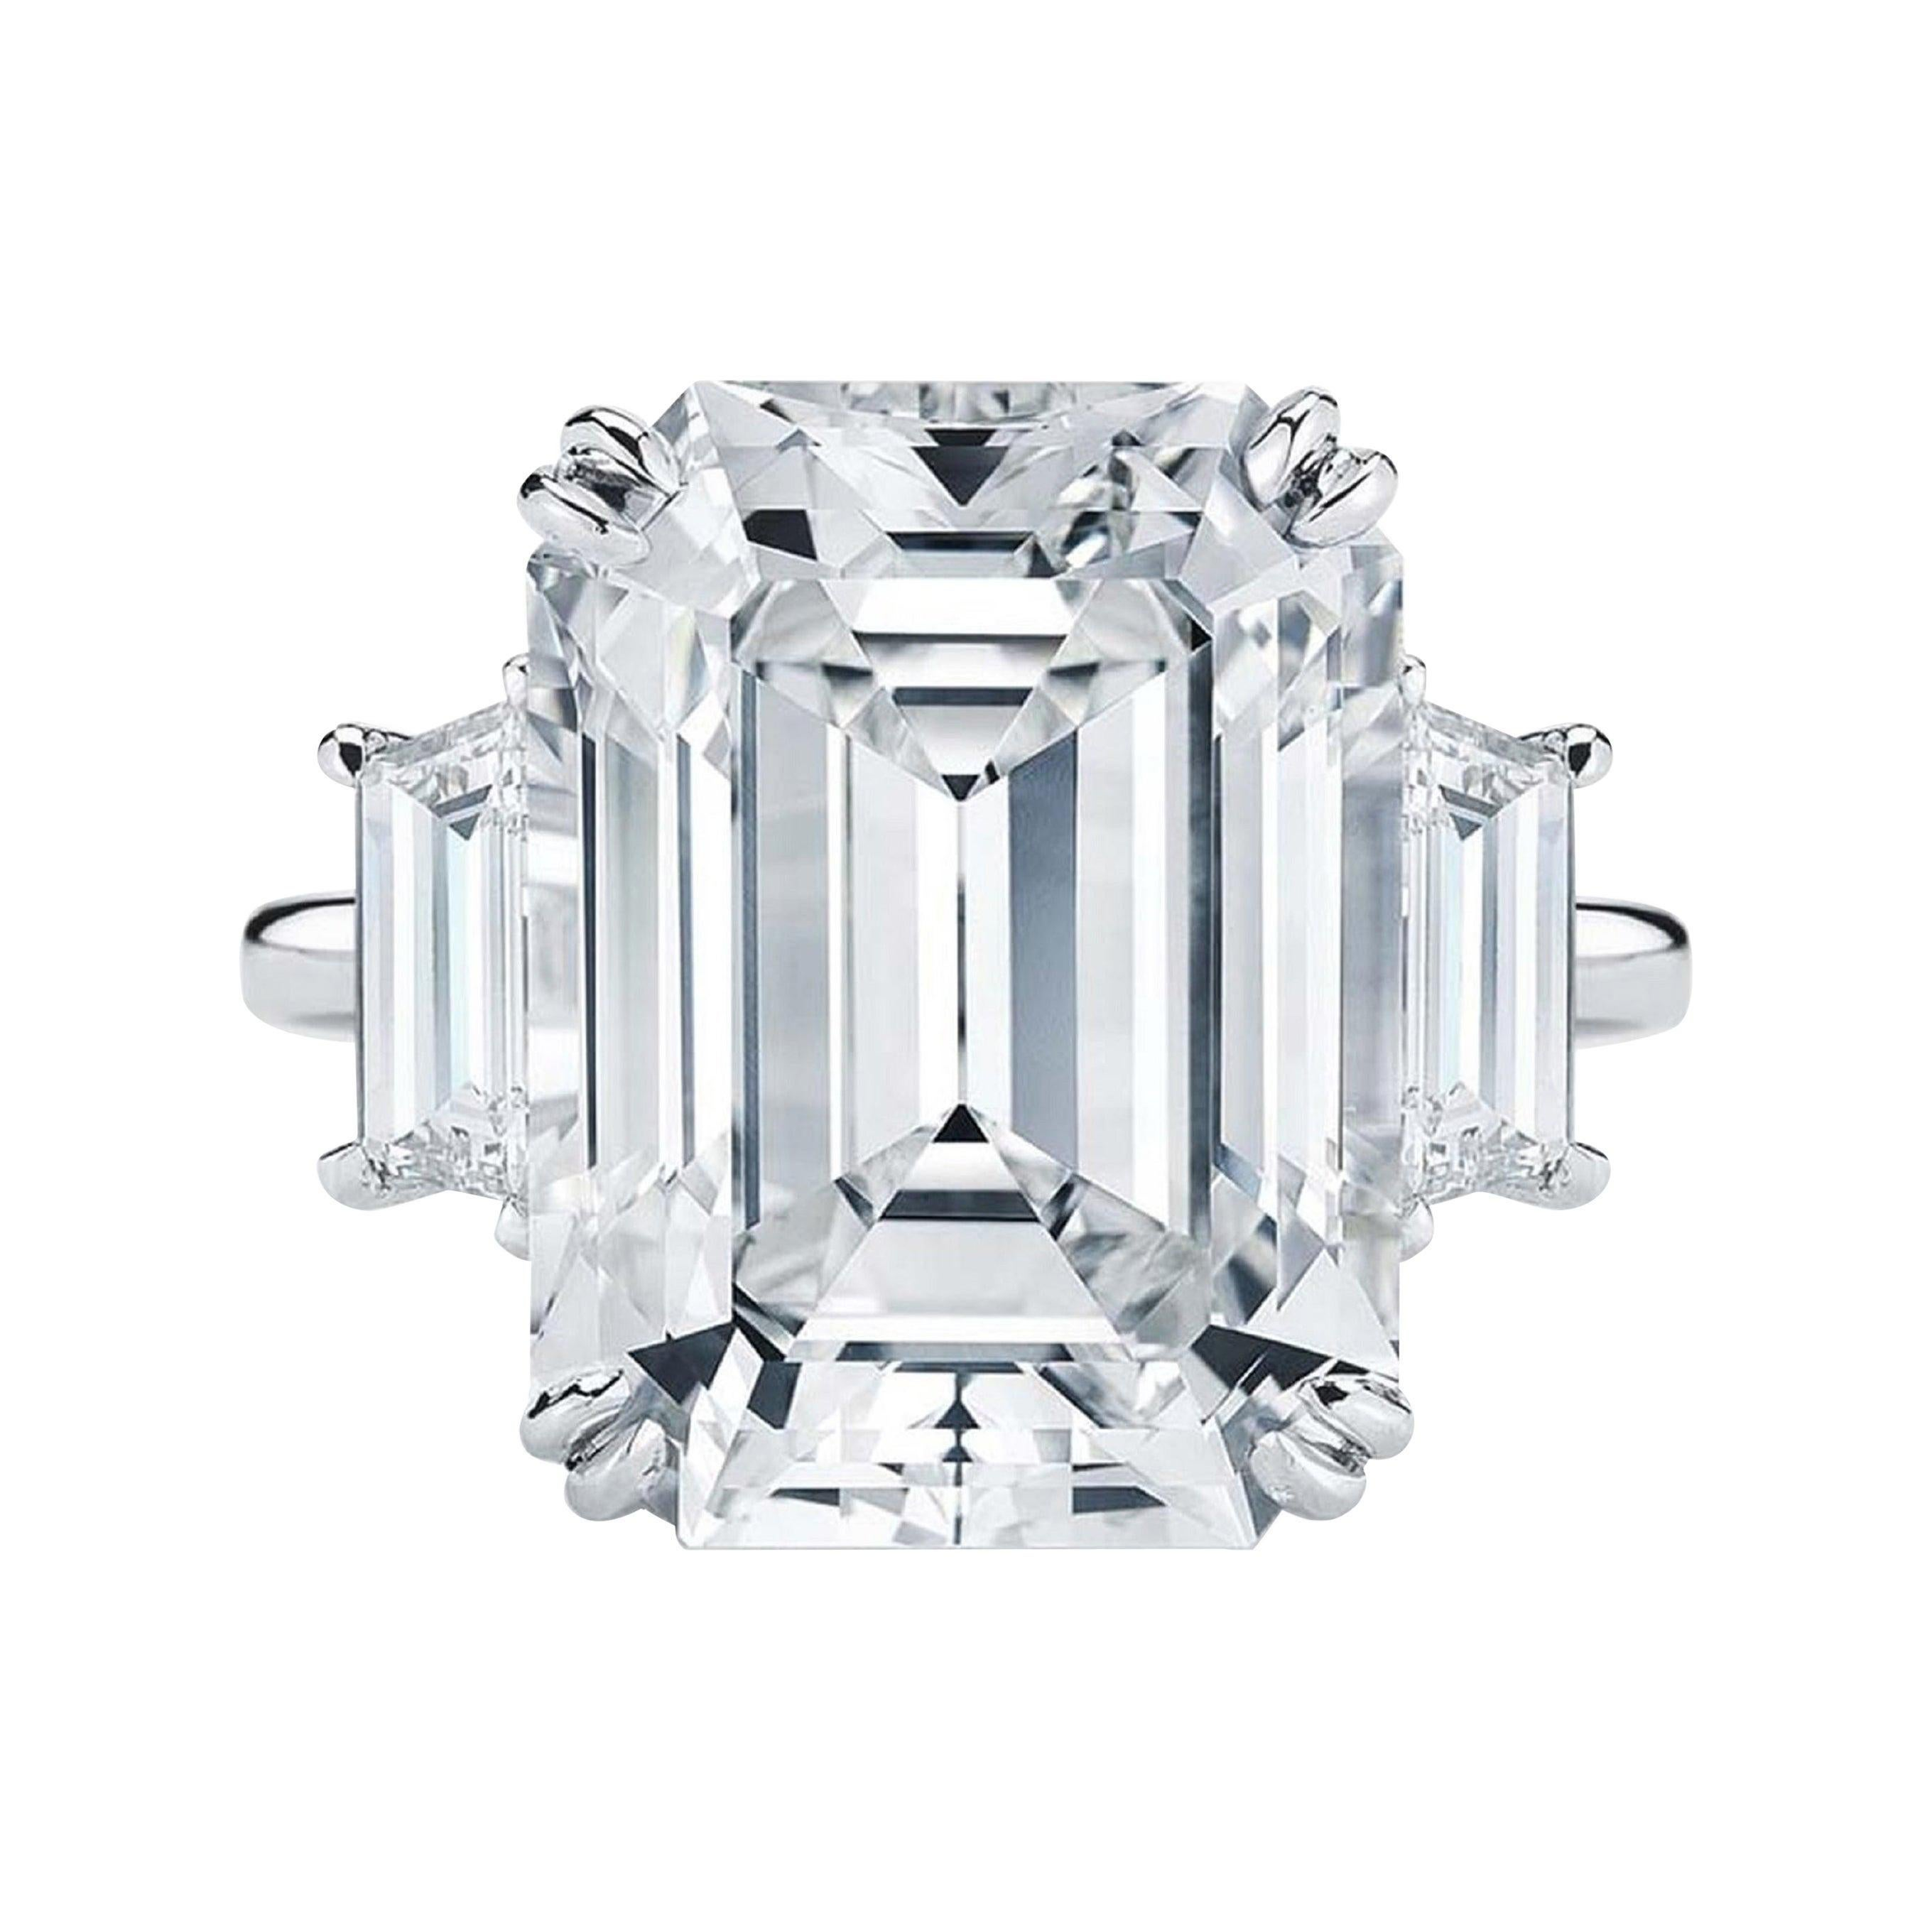 EXCEPTIONAL FLAWLESS GIA Certified 5 Carat Emerald Cut Diamond Platinum Ring